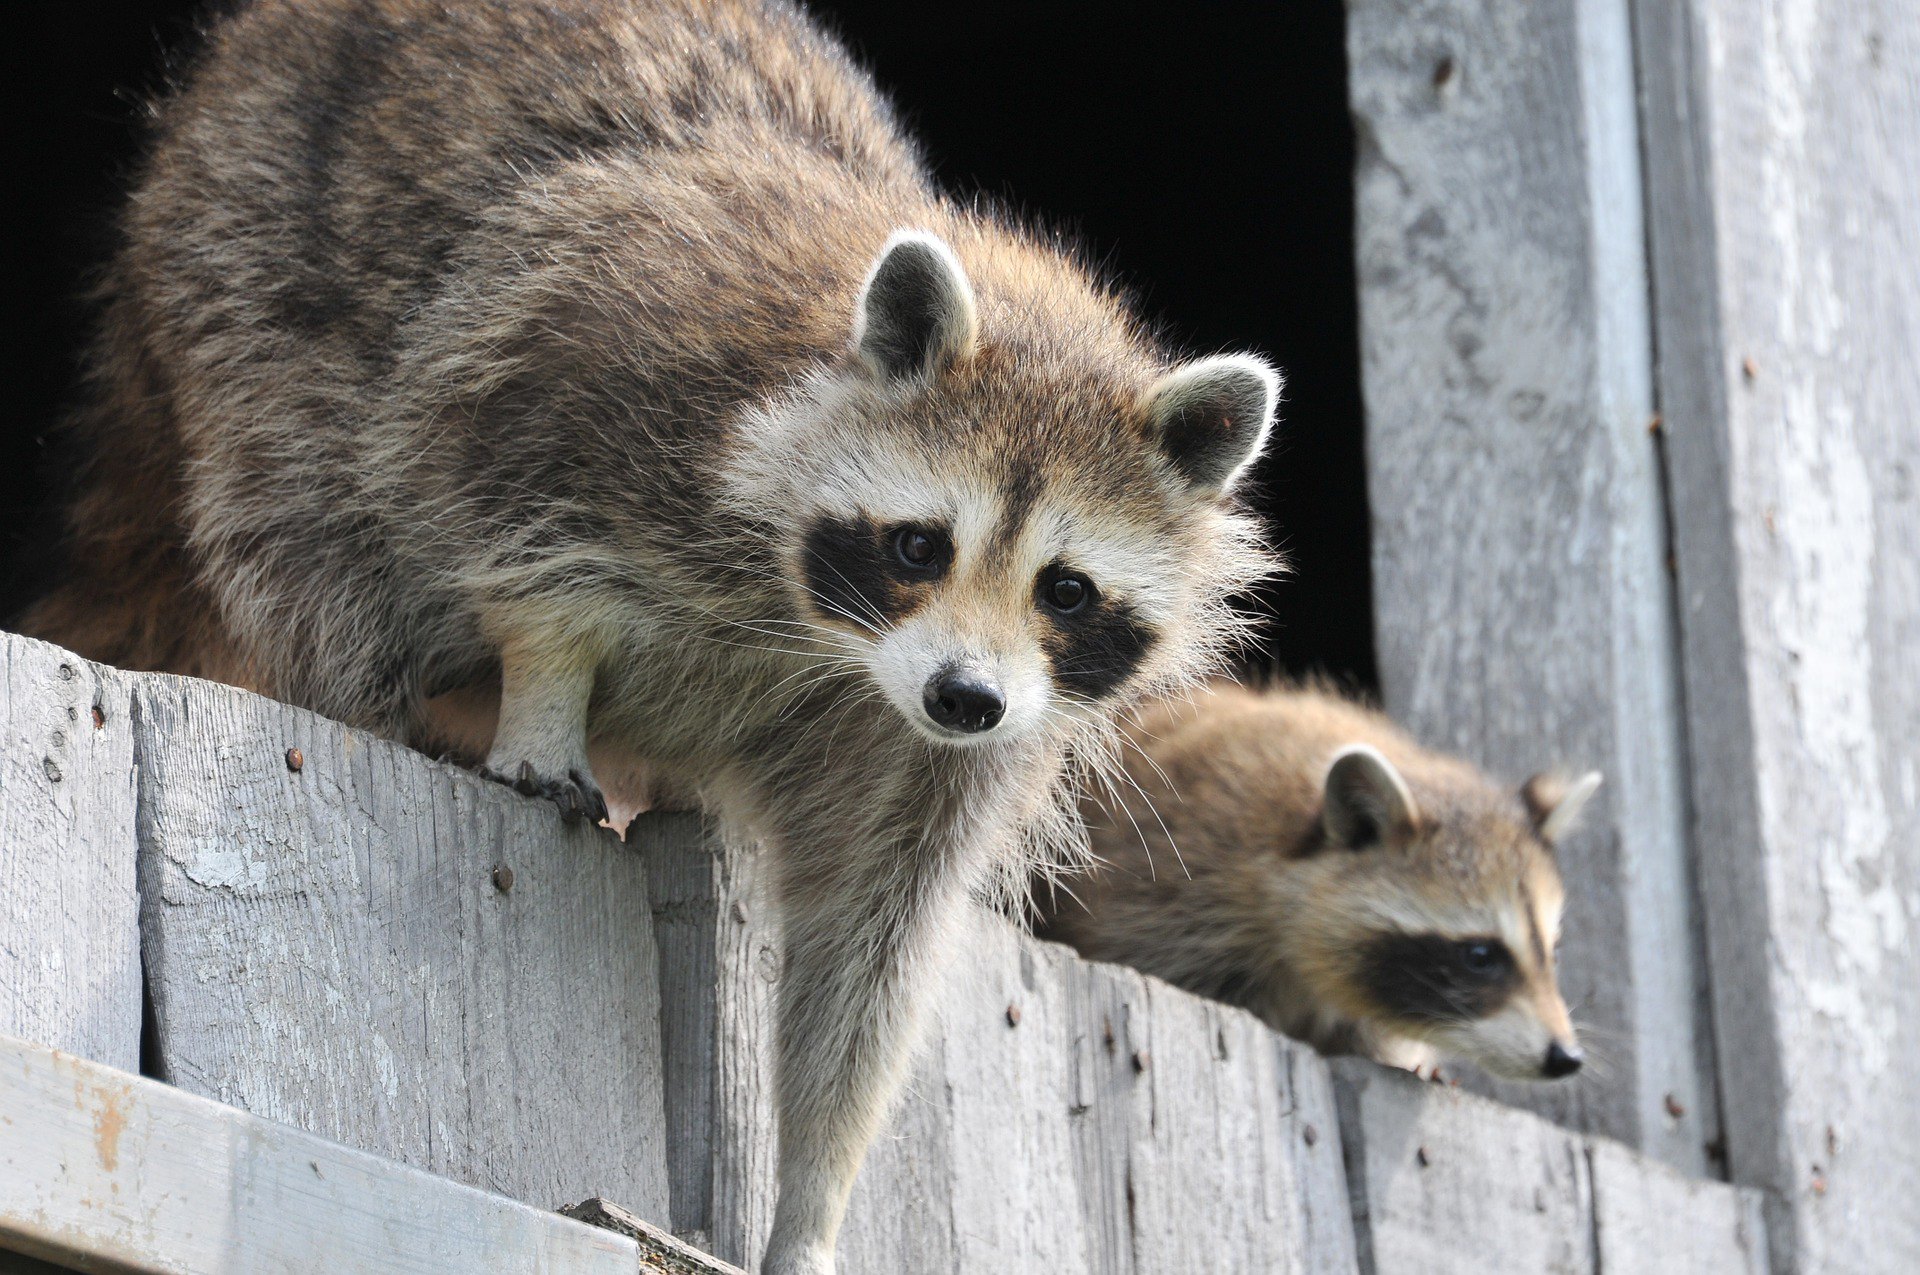 Raccoons How To Identify And Get Rid Of Raccoons In The